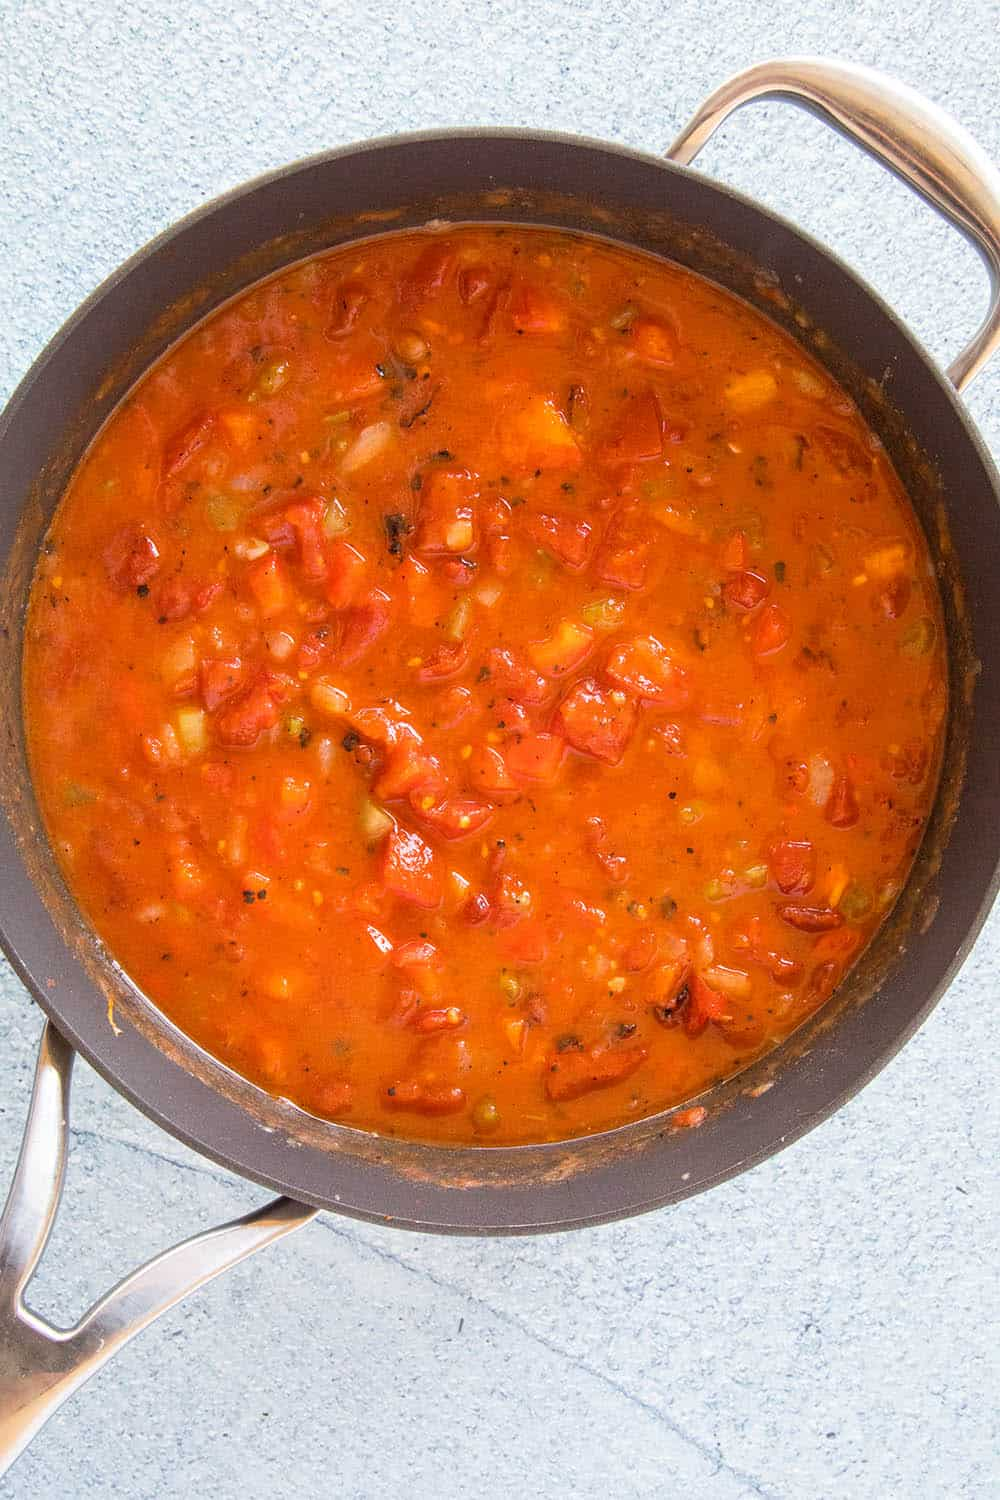 Creole Sauce simmering in a pan